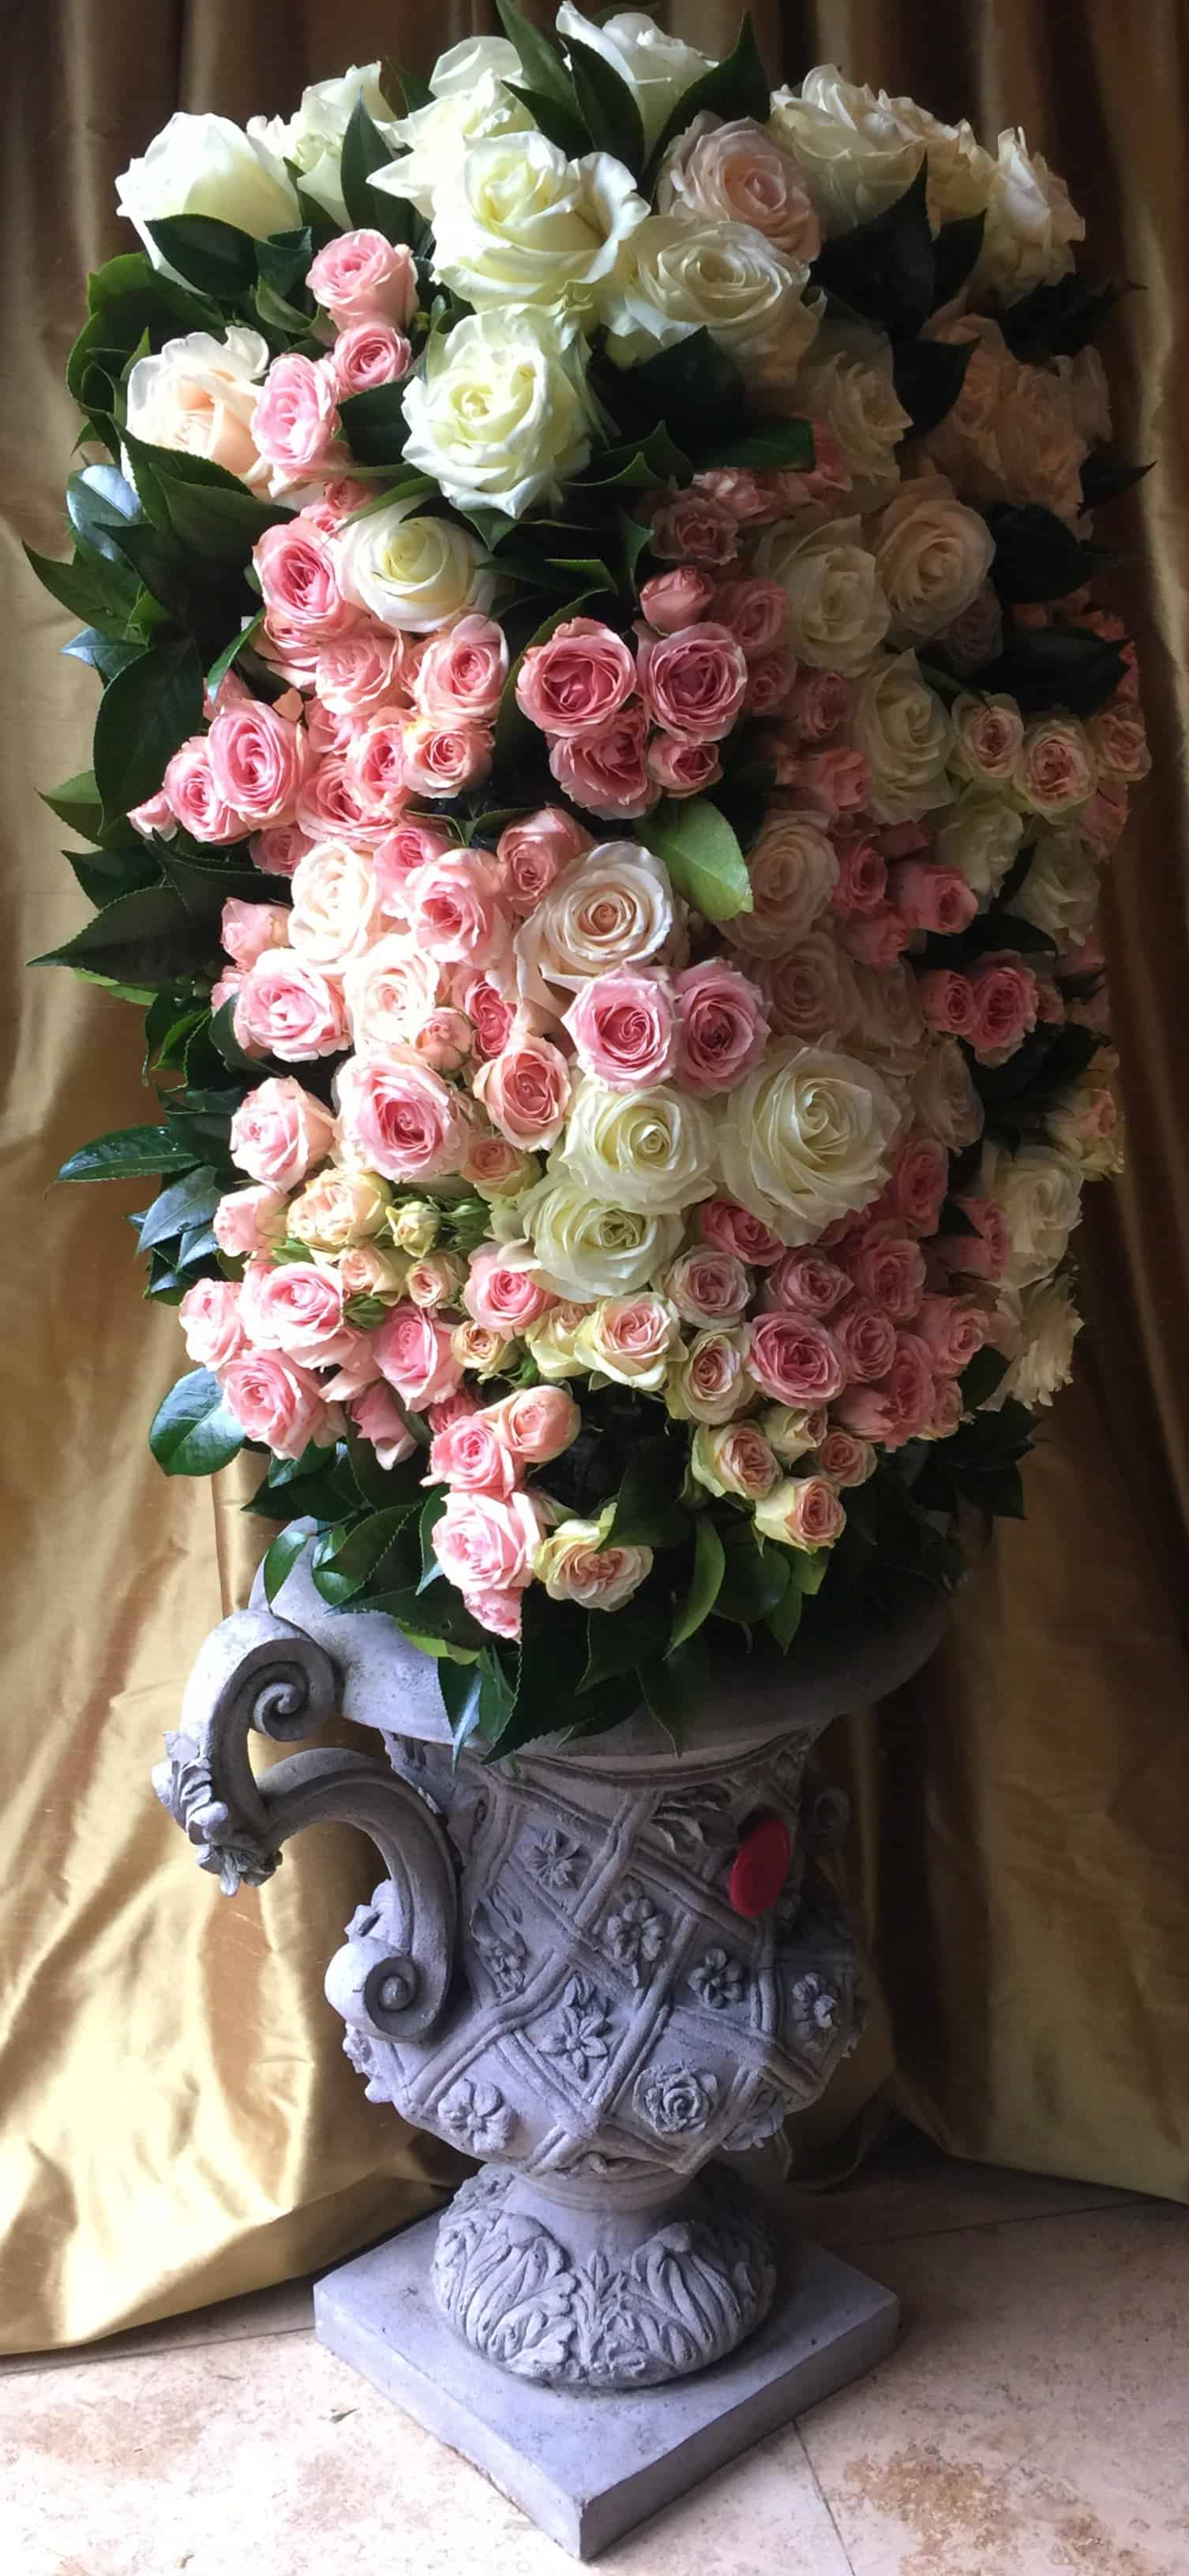 Floral urn with ivory roses, blush pink roses, peach roses and foliage in an ornate stone urn